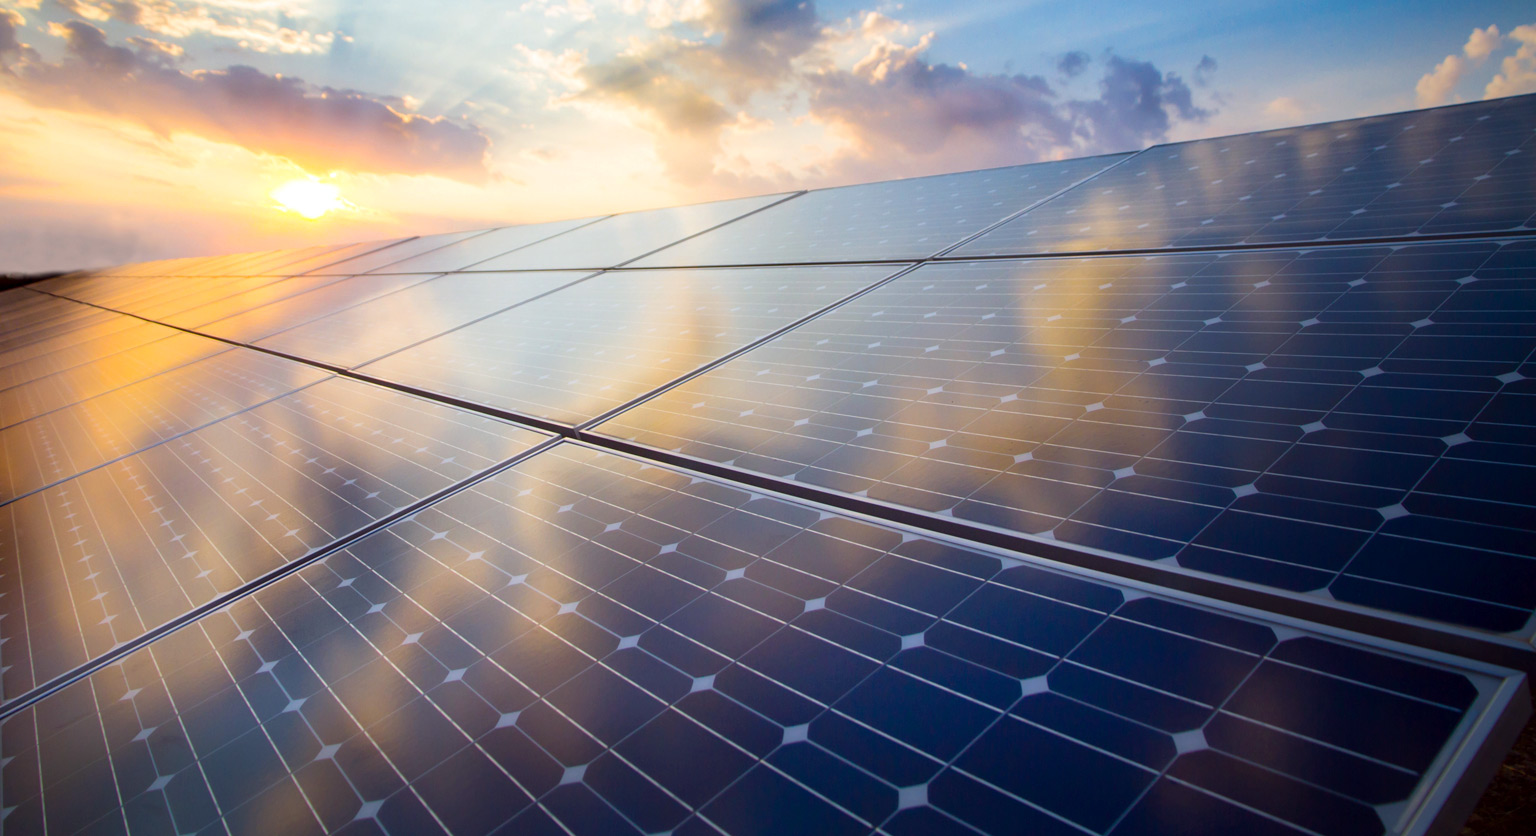 How Solar Power Systems Can Continue Evolving